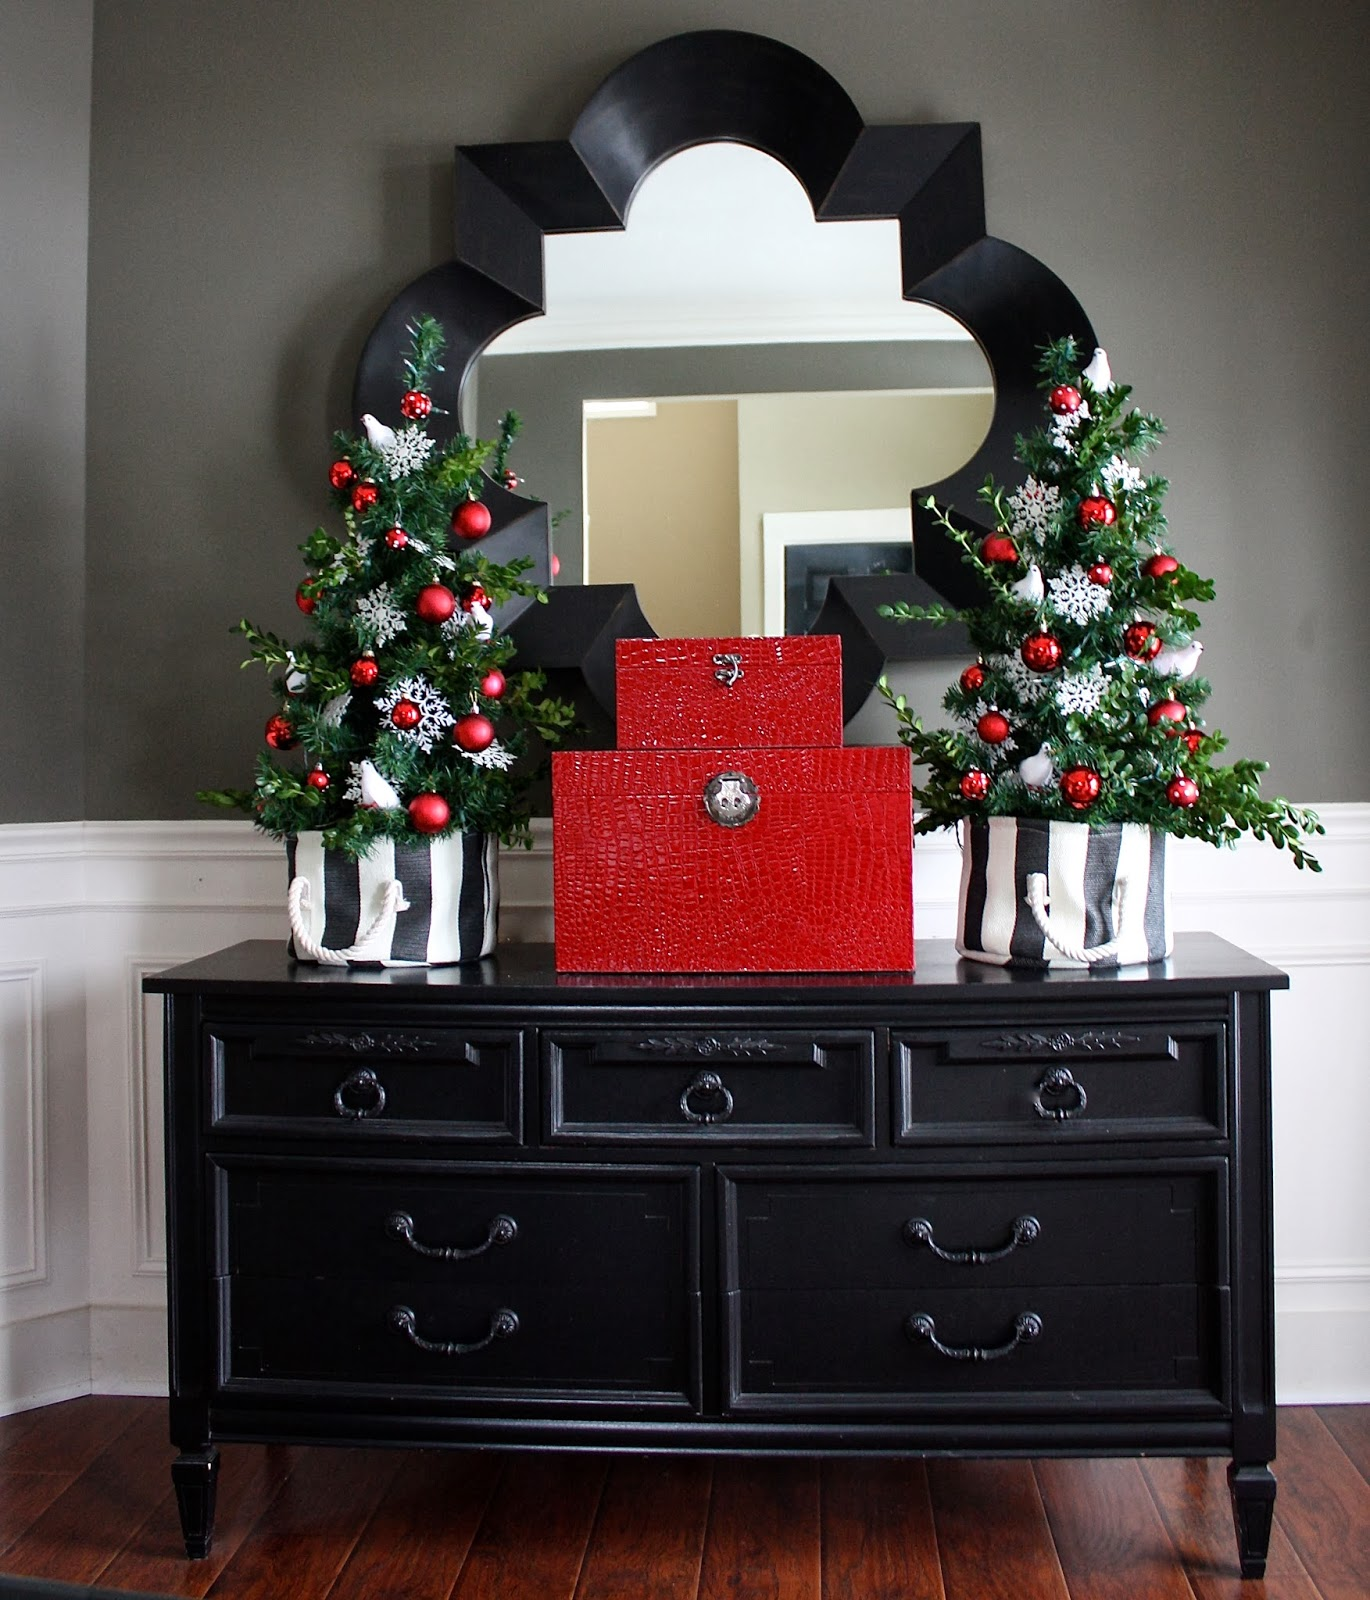 Holiday Home Decorating Ideas a holiday house tour with lots of christmas decorating ideas including many vintage christmas decorations Holiday Home Tour 2013